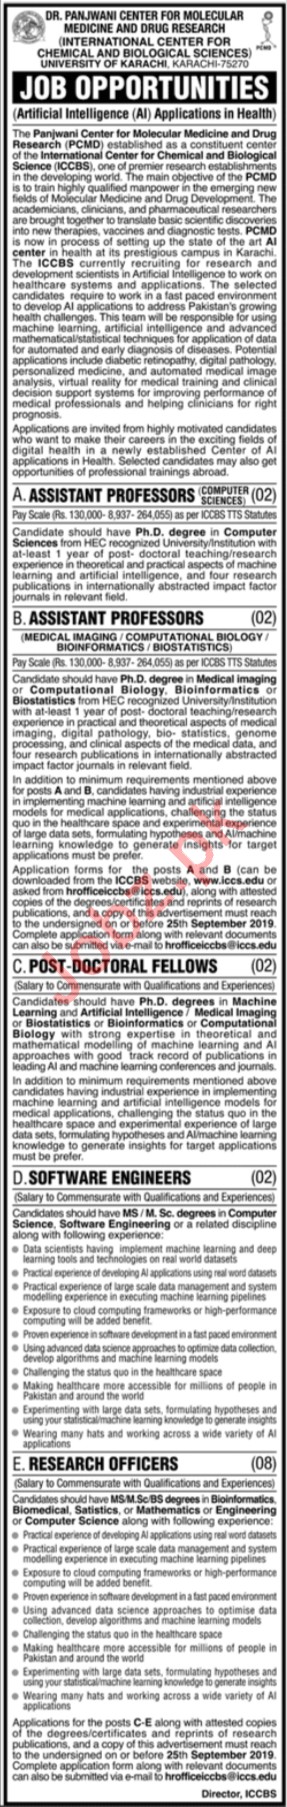 University of Karachi Faculty & Non Faculty Jobs 2019